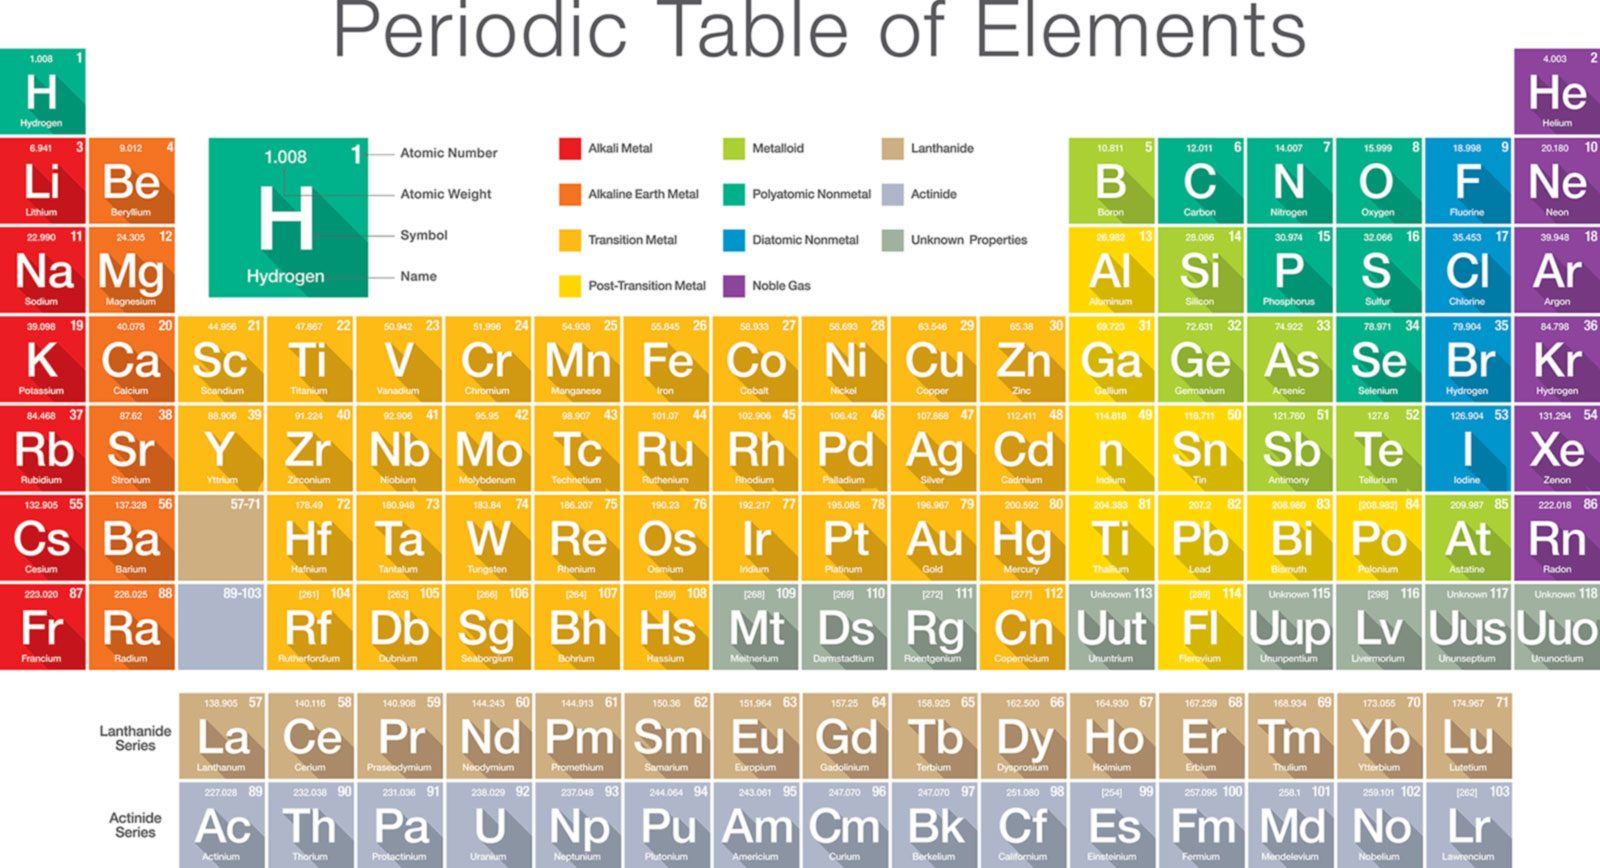 The periodic table holds all of the atoms and elements.